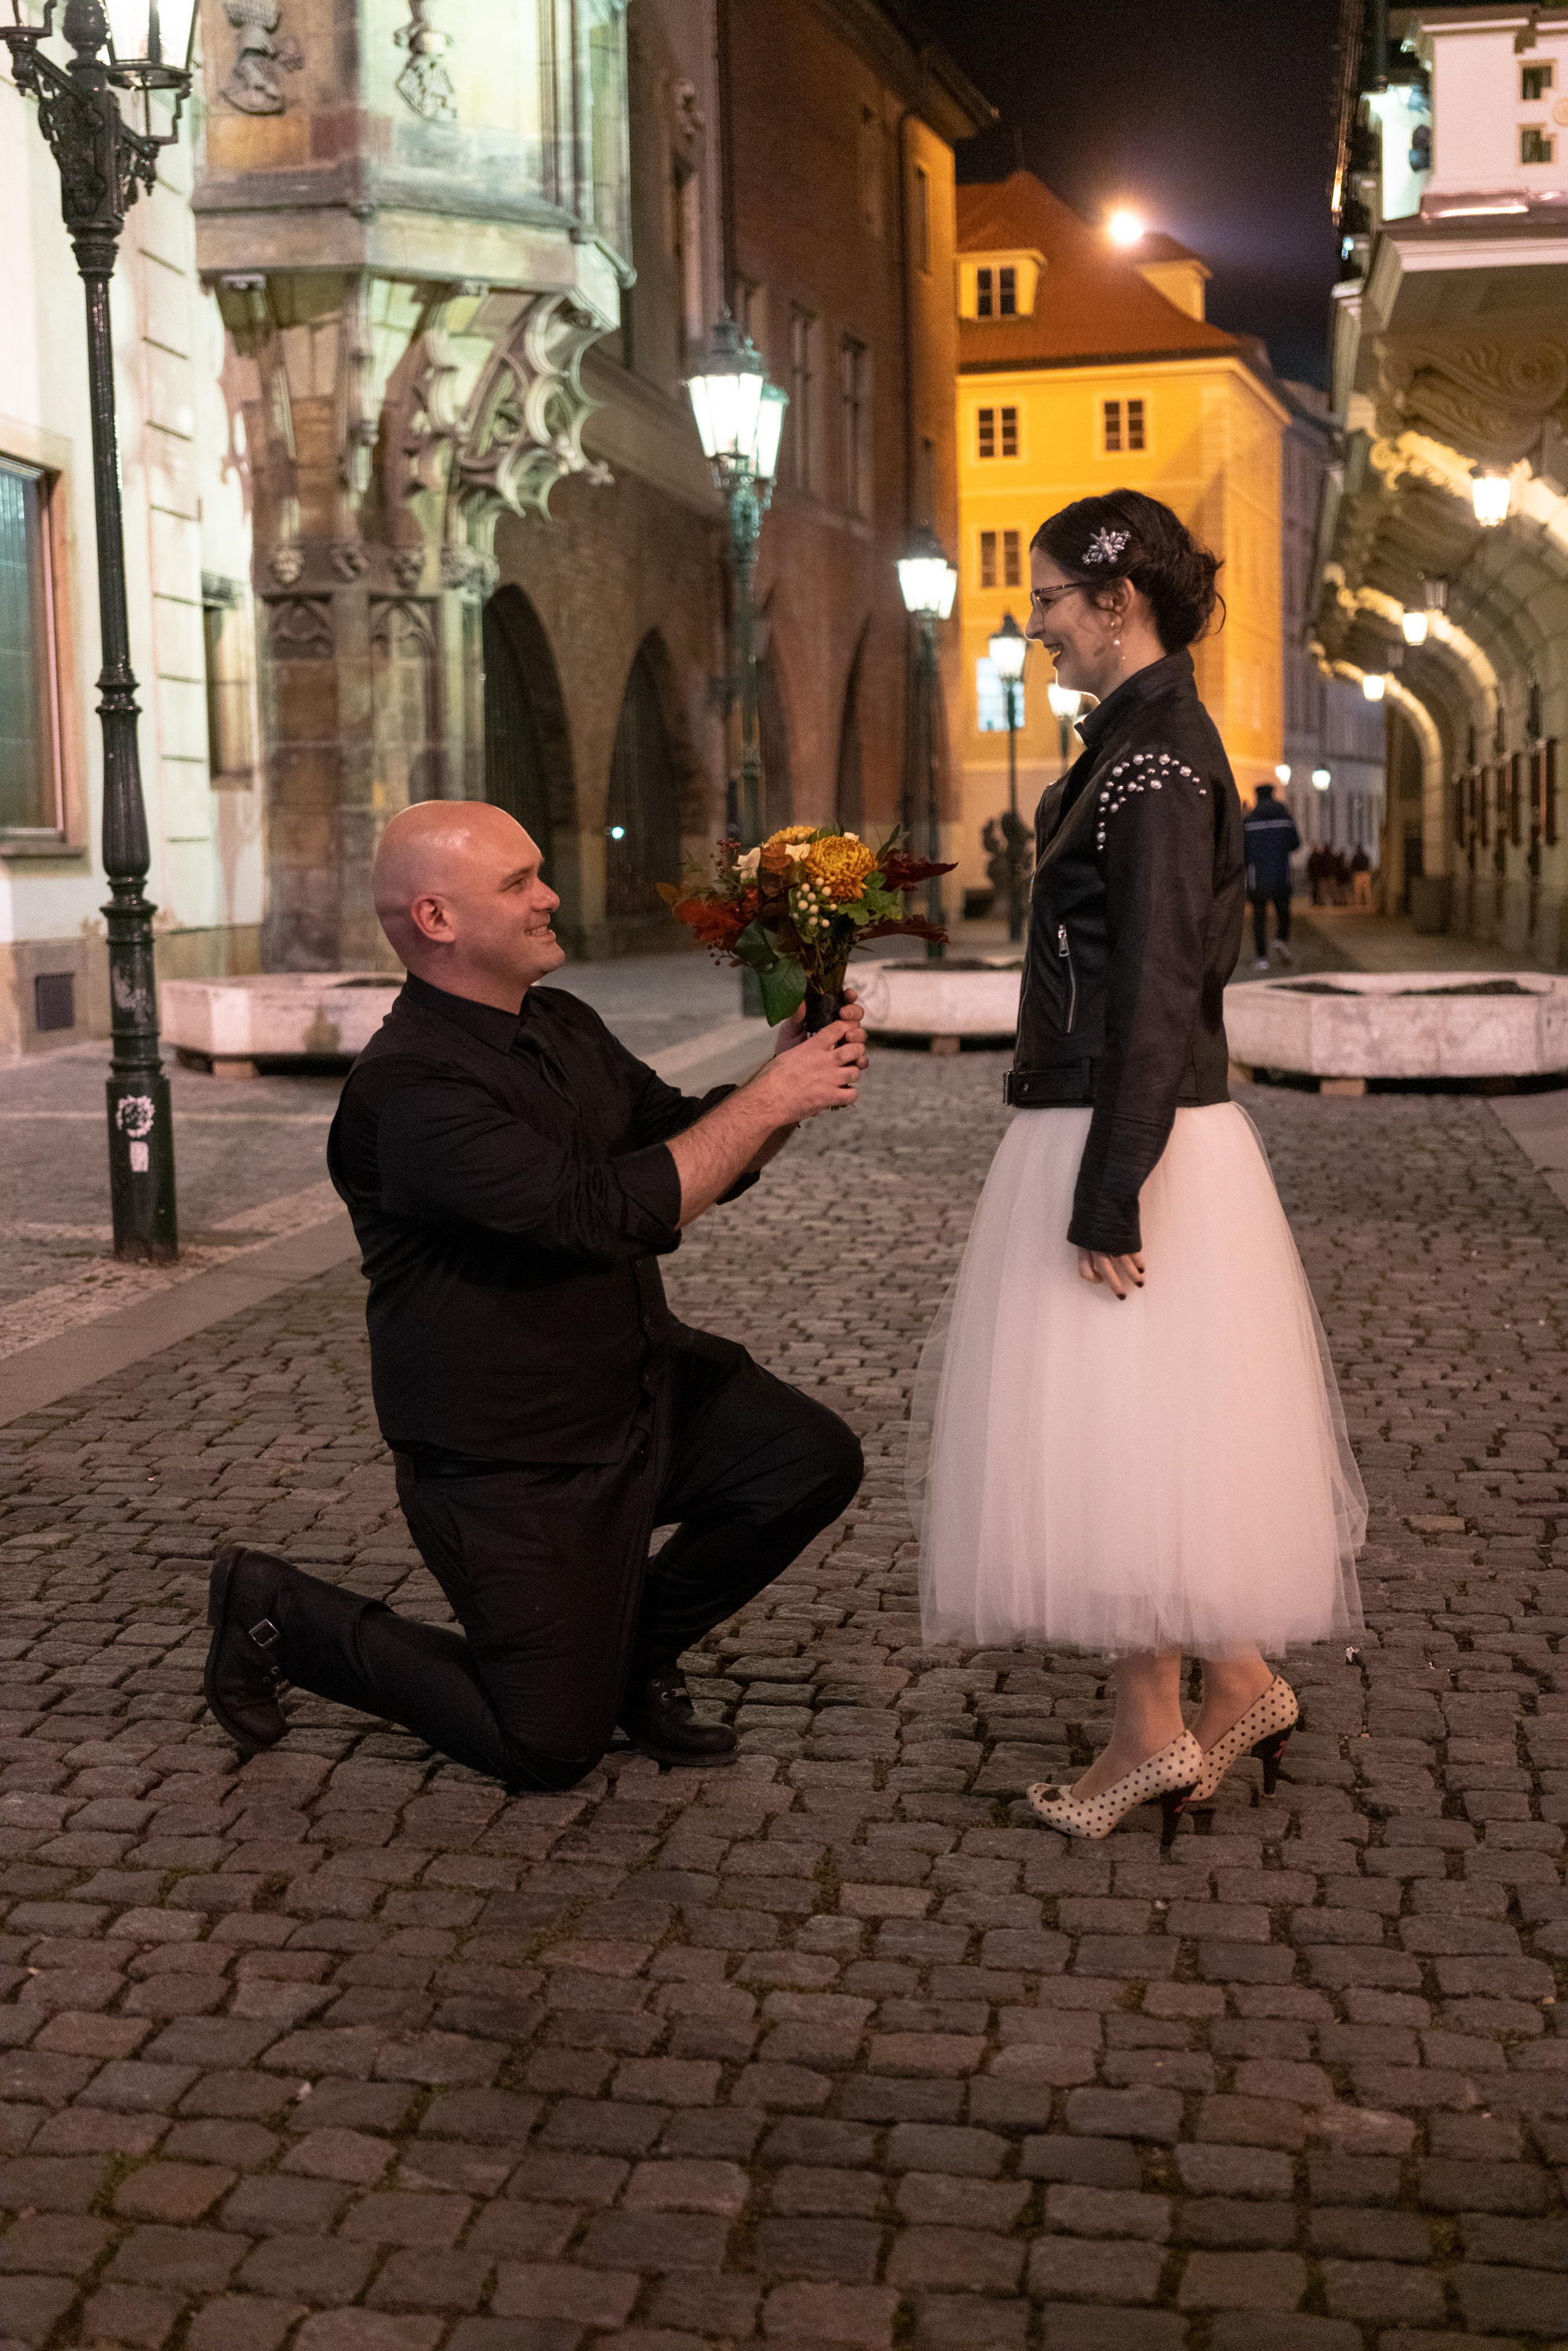 Wedding proposal at night on the streets of old Prague